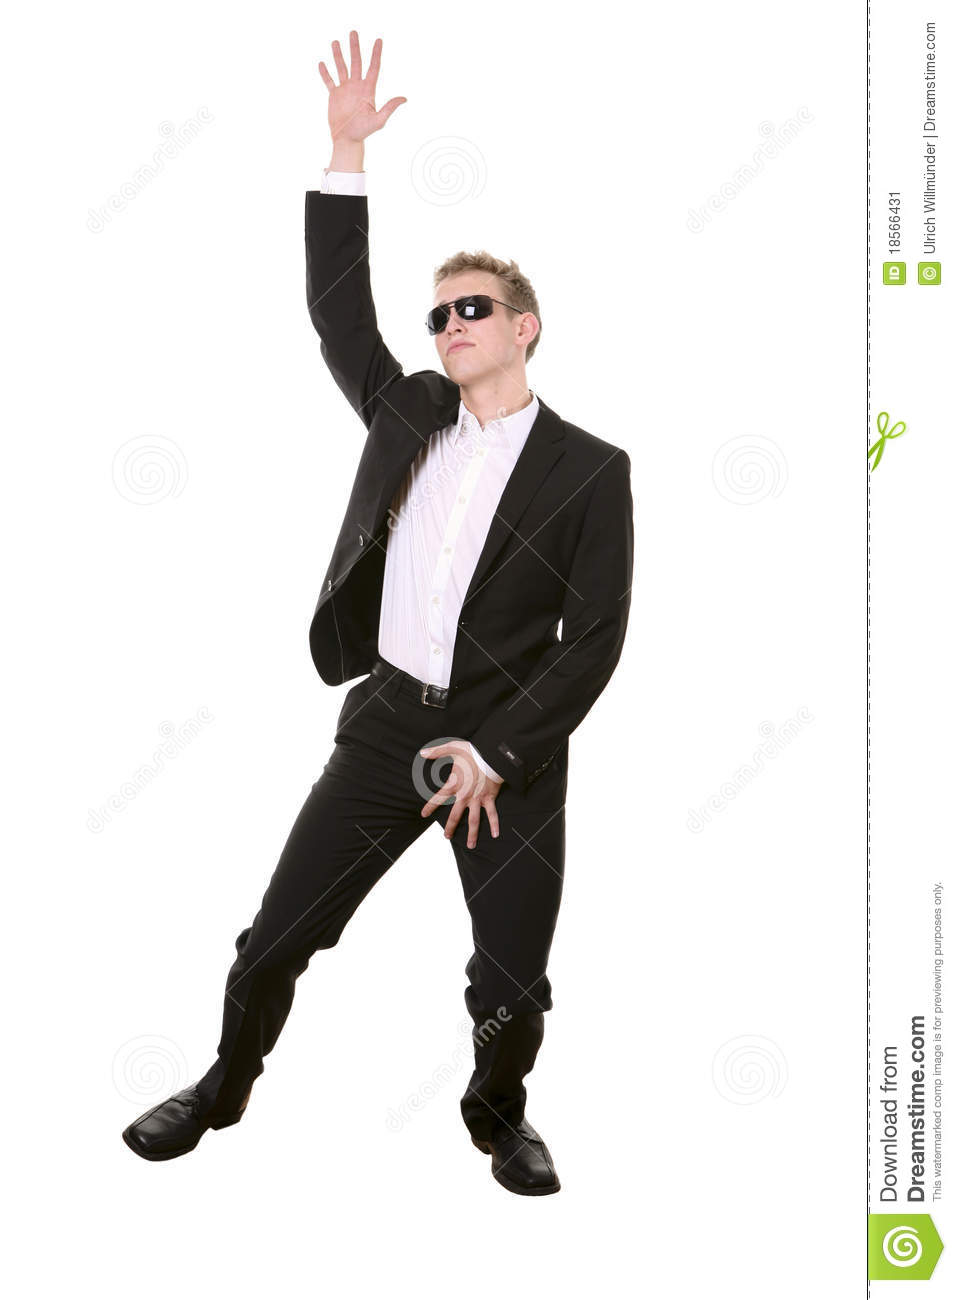 Cool Young Man In Suit Dancing   Isolated On White